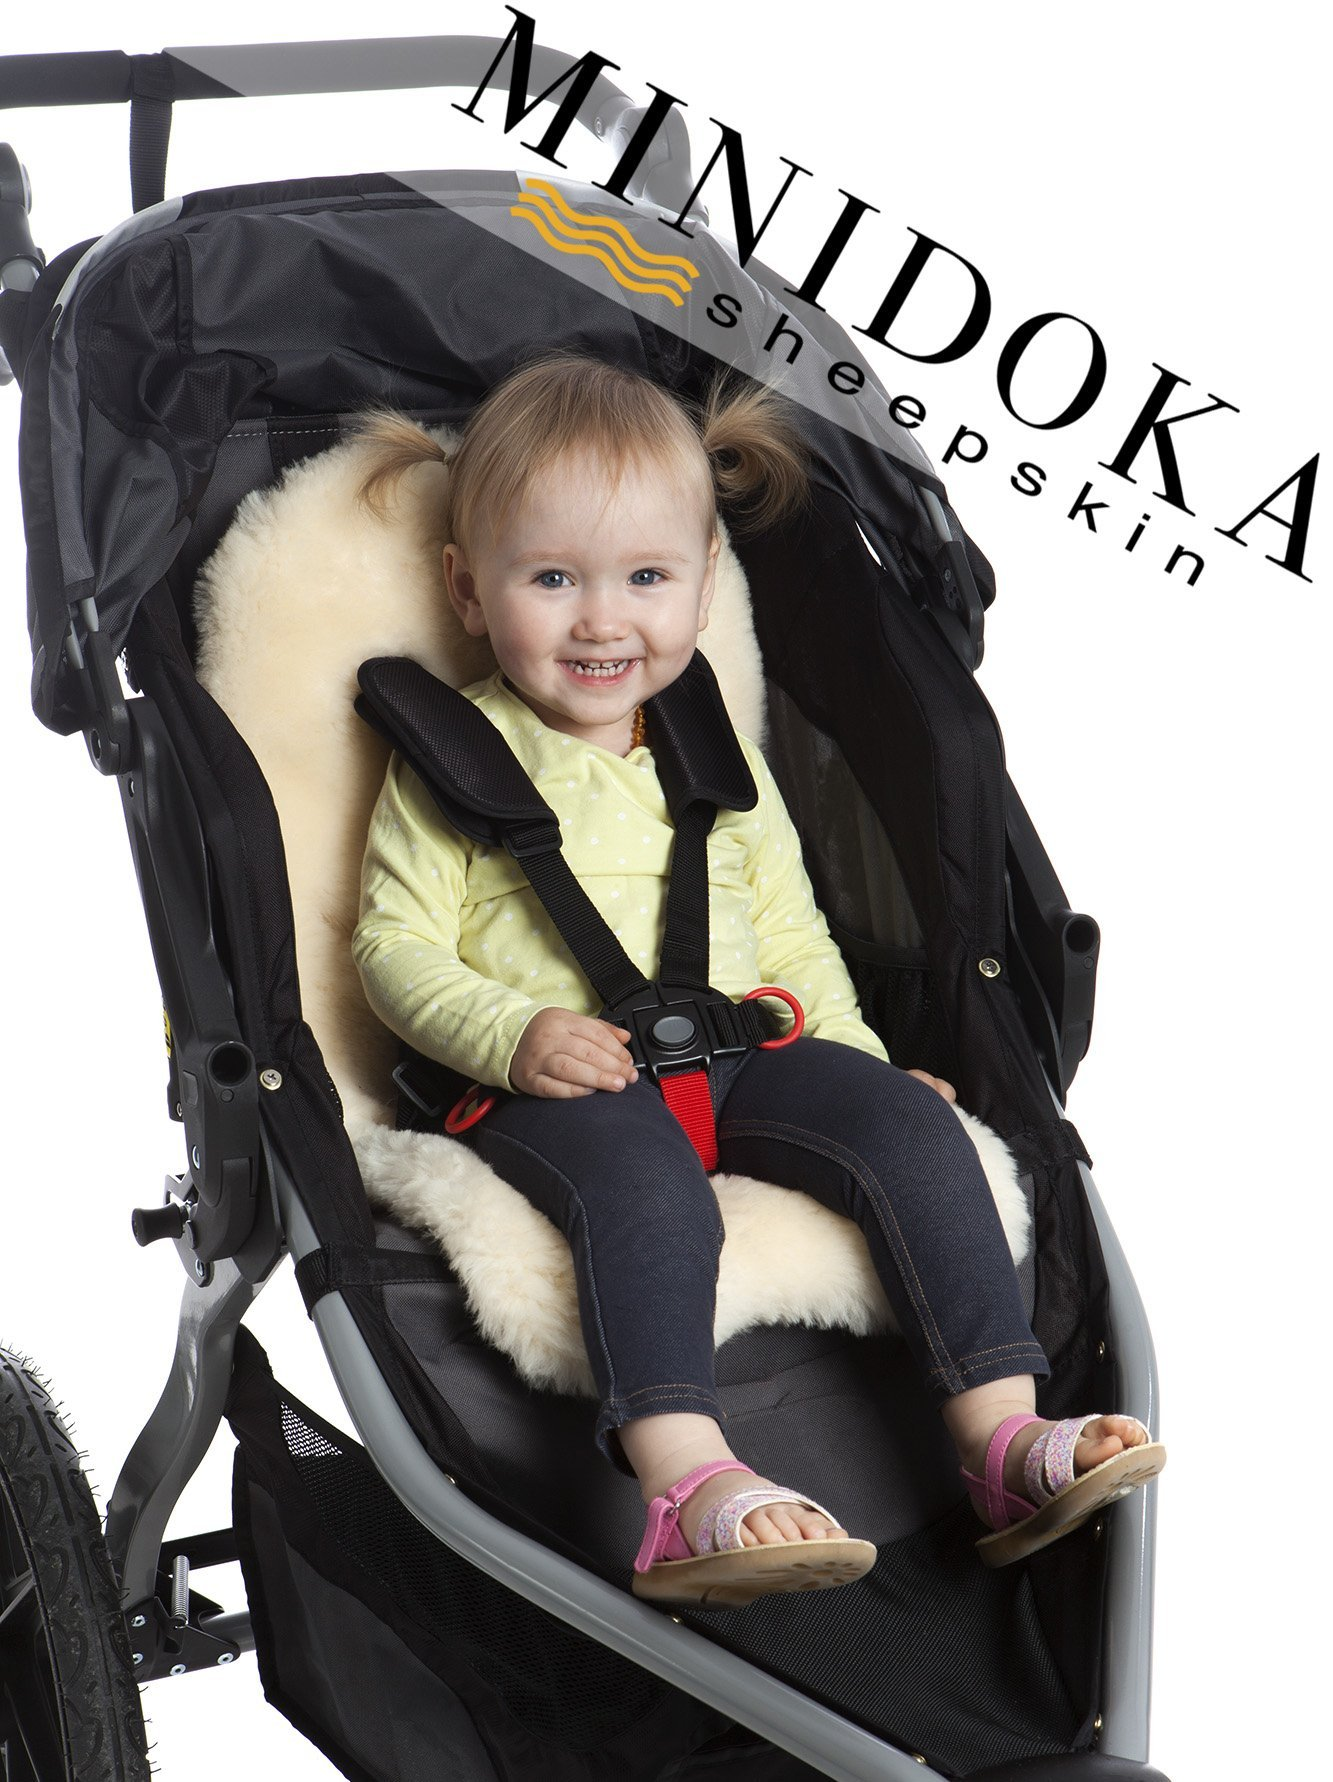 Genuine Lambskin Stroller Liner, Seat Cover, Naturally Breathable, Year Round Comfort, Universal Fit, by Minidoka Sheepskin by Desert Breeze Distributing